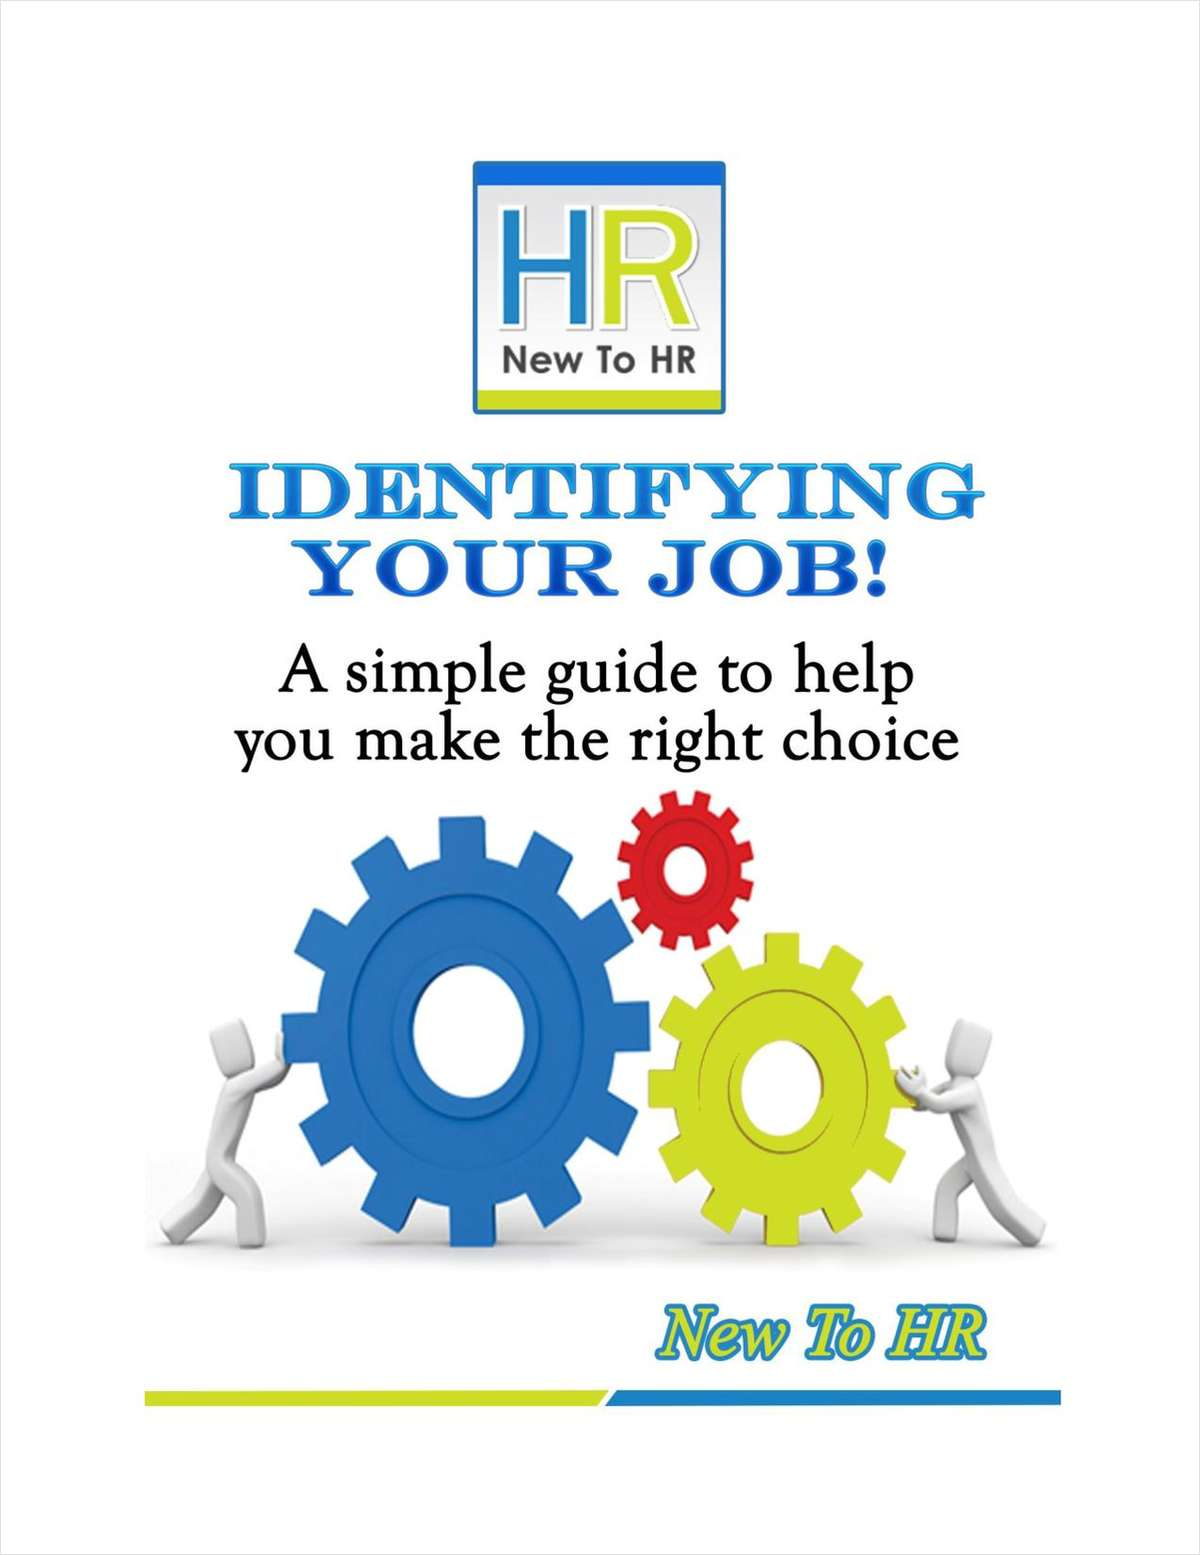 Identifying Your Job!